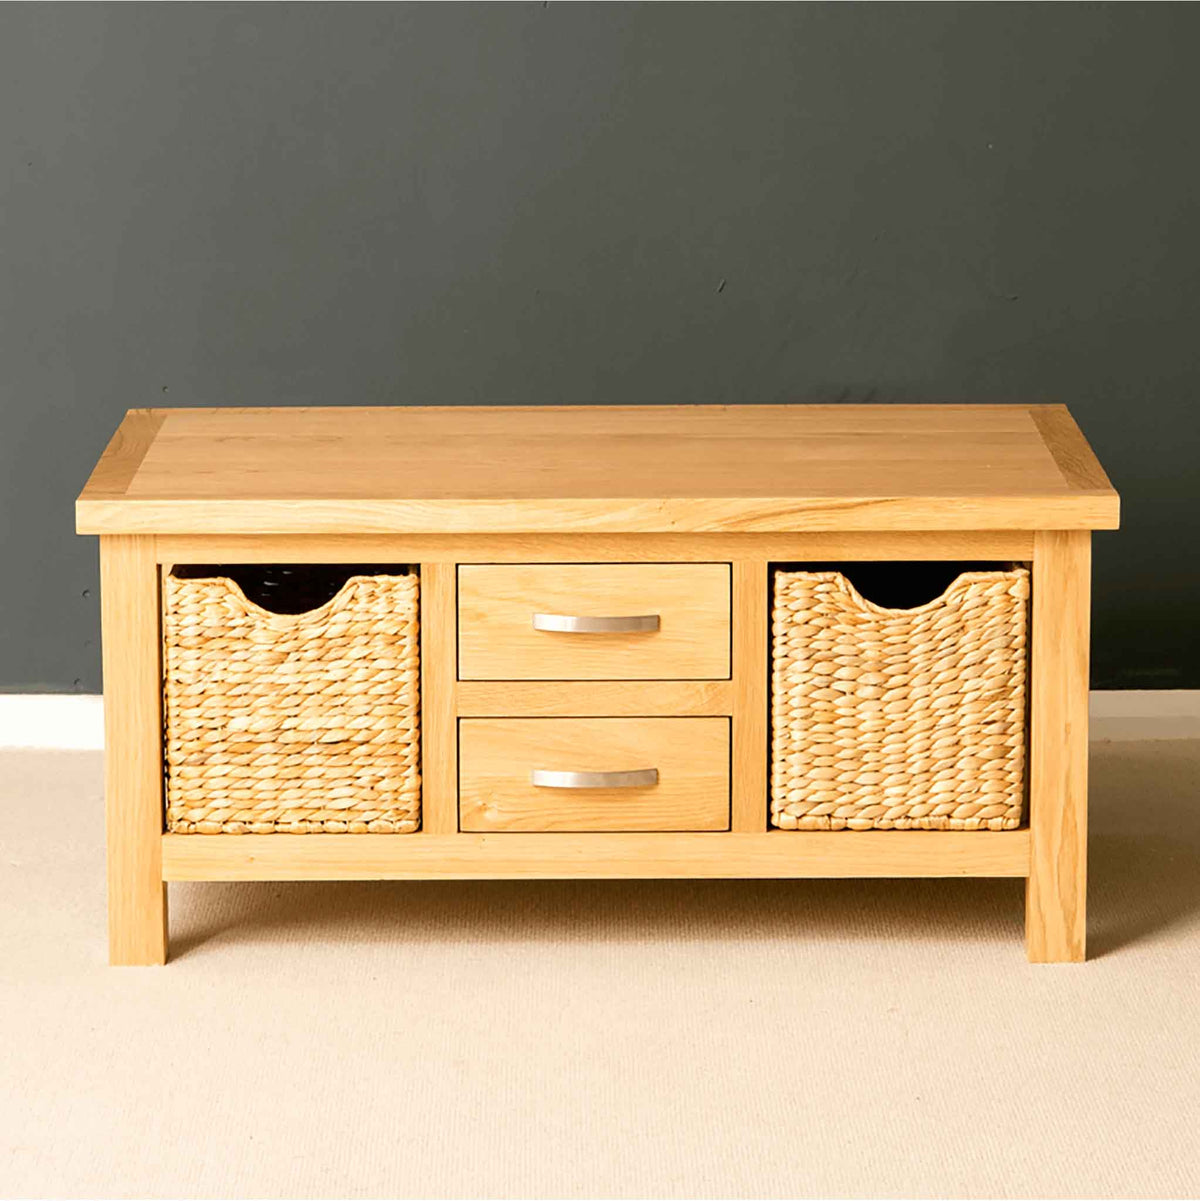 London Oak Coffee Table with Baskets - Lifestyle